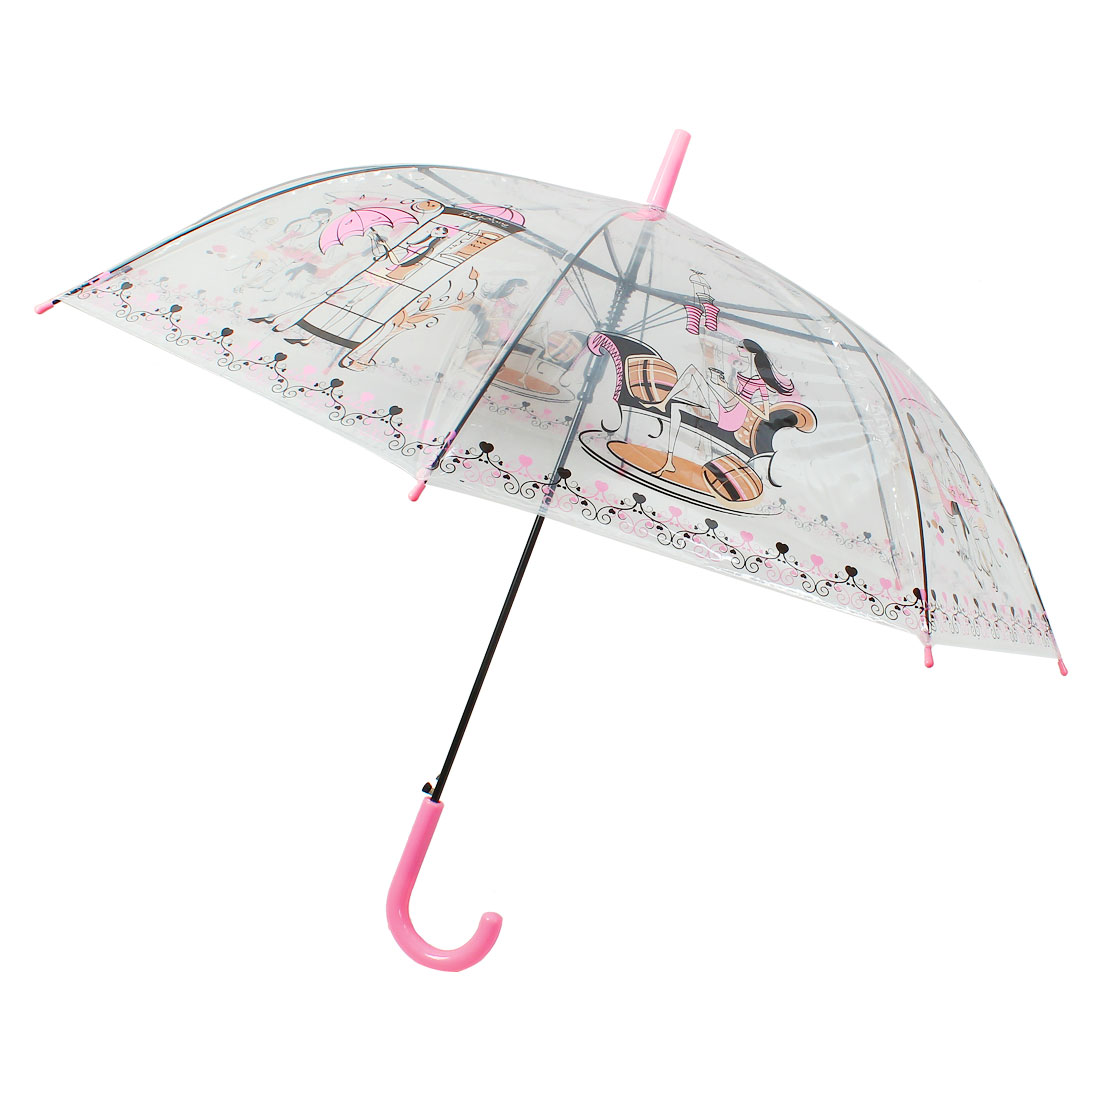 Hooked Handle Sexy Lady Pattern PVC Rain Umbrella Clear Pink Black